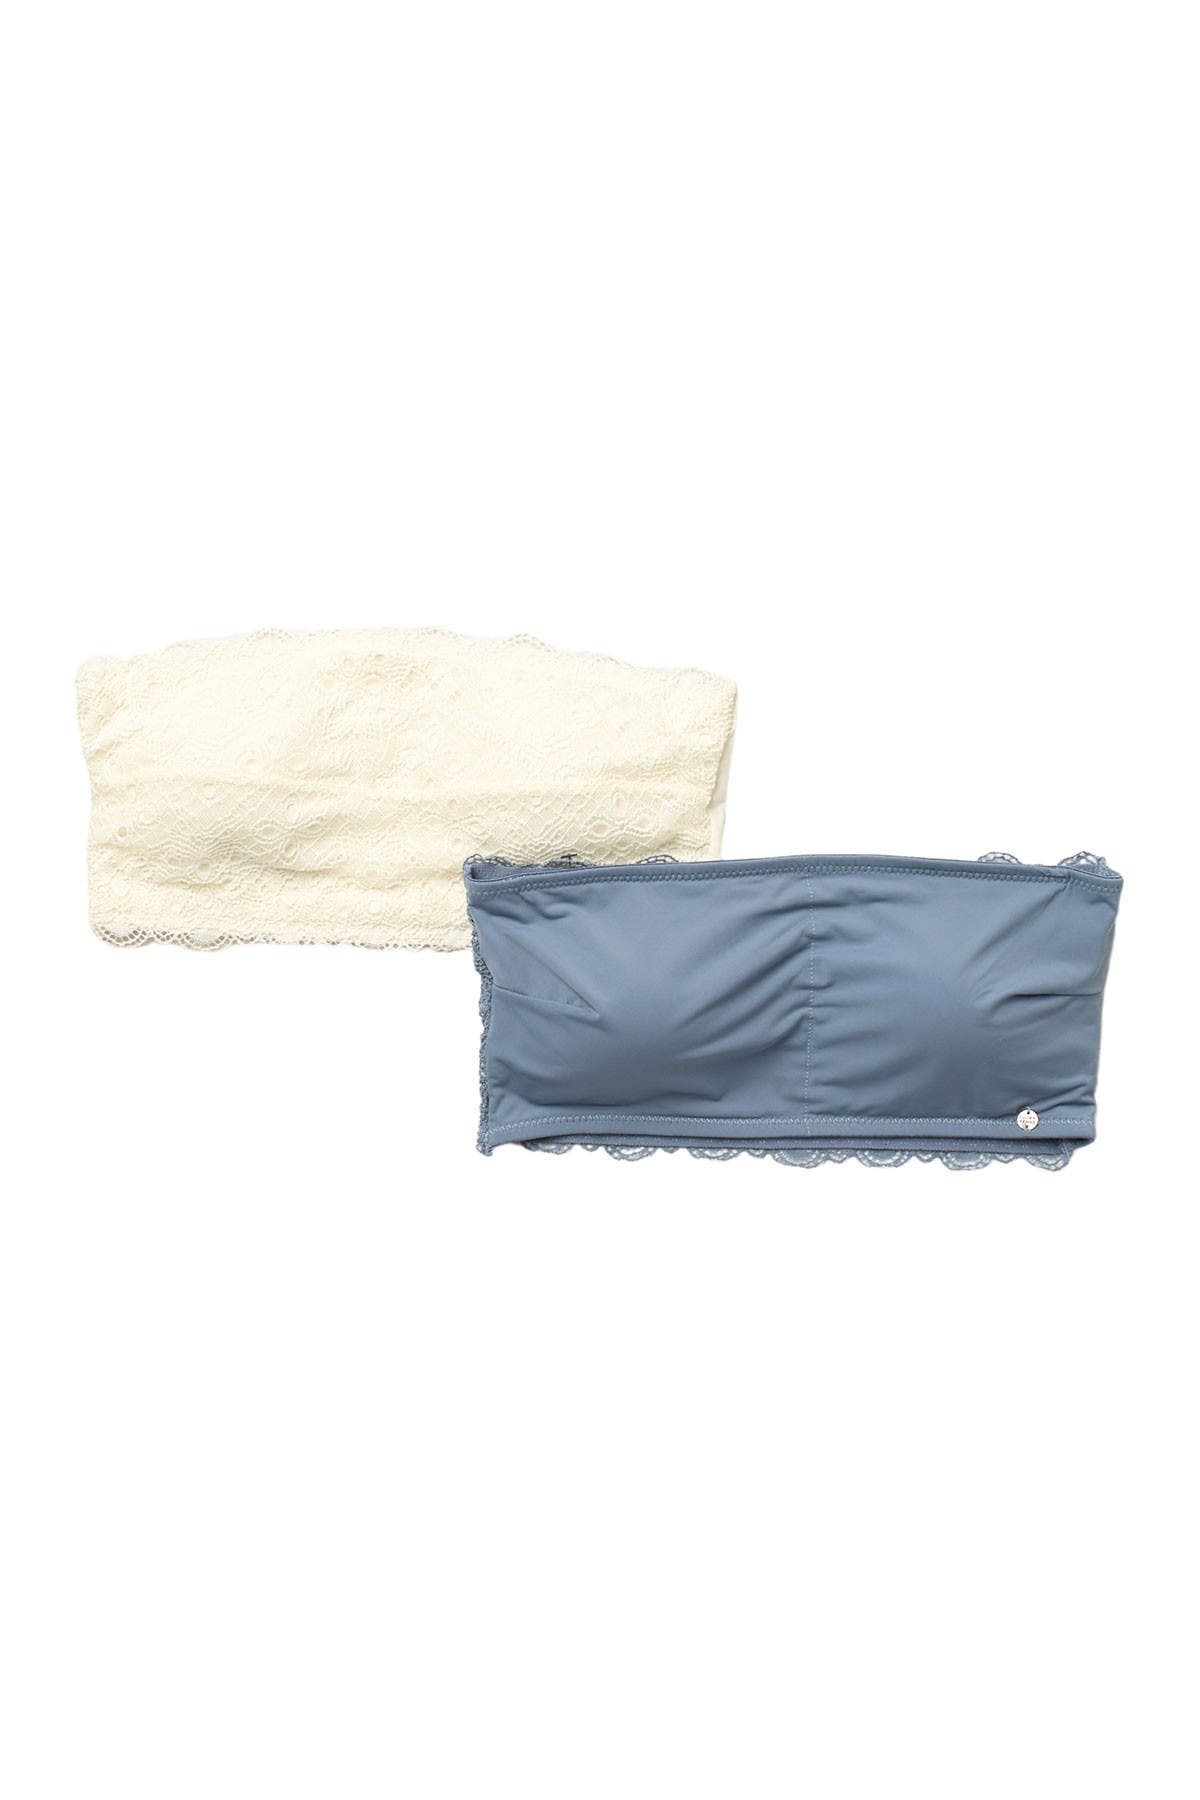 Lucky Brand Crochet Lace Strapless Bandeau - Pack of 2